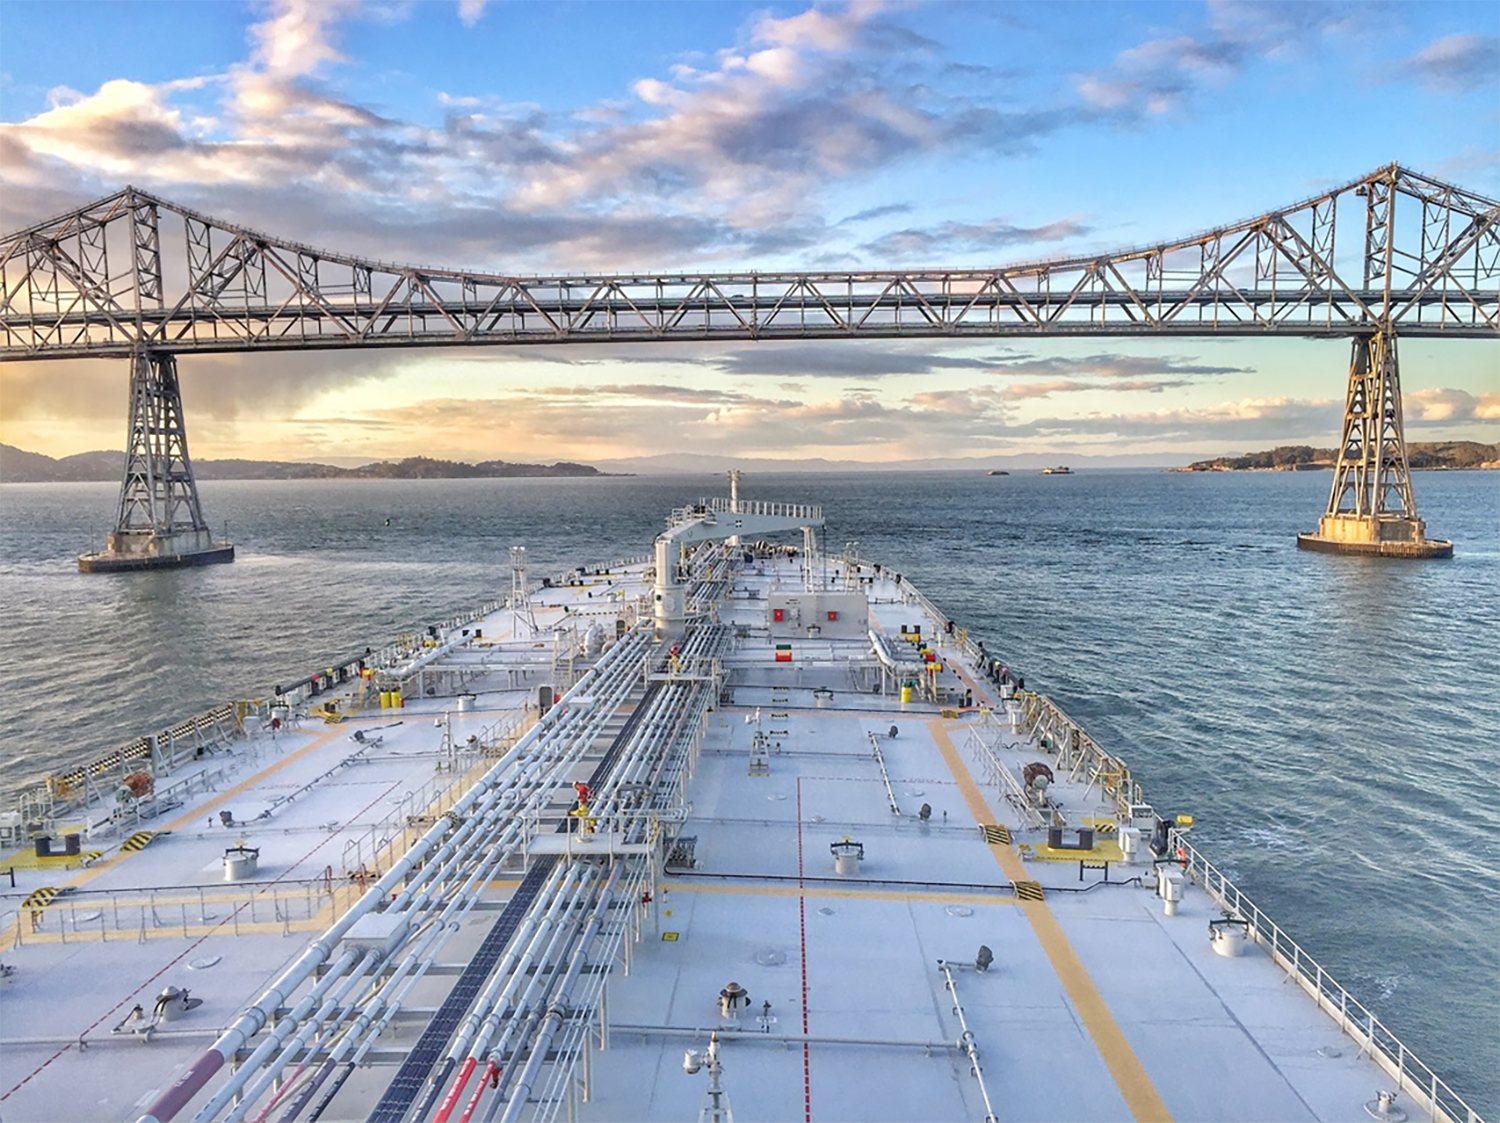 Tanker heading west and approaching the Richmond–San Rafael Bridge and Pinole Shoal Channel.